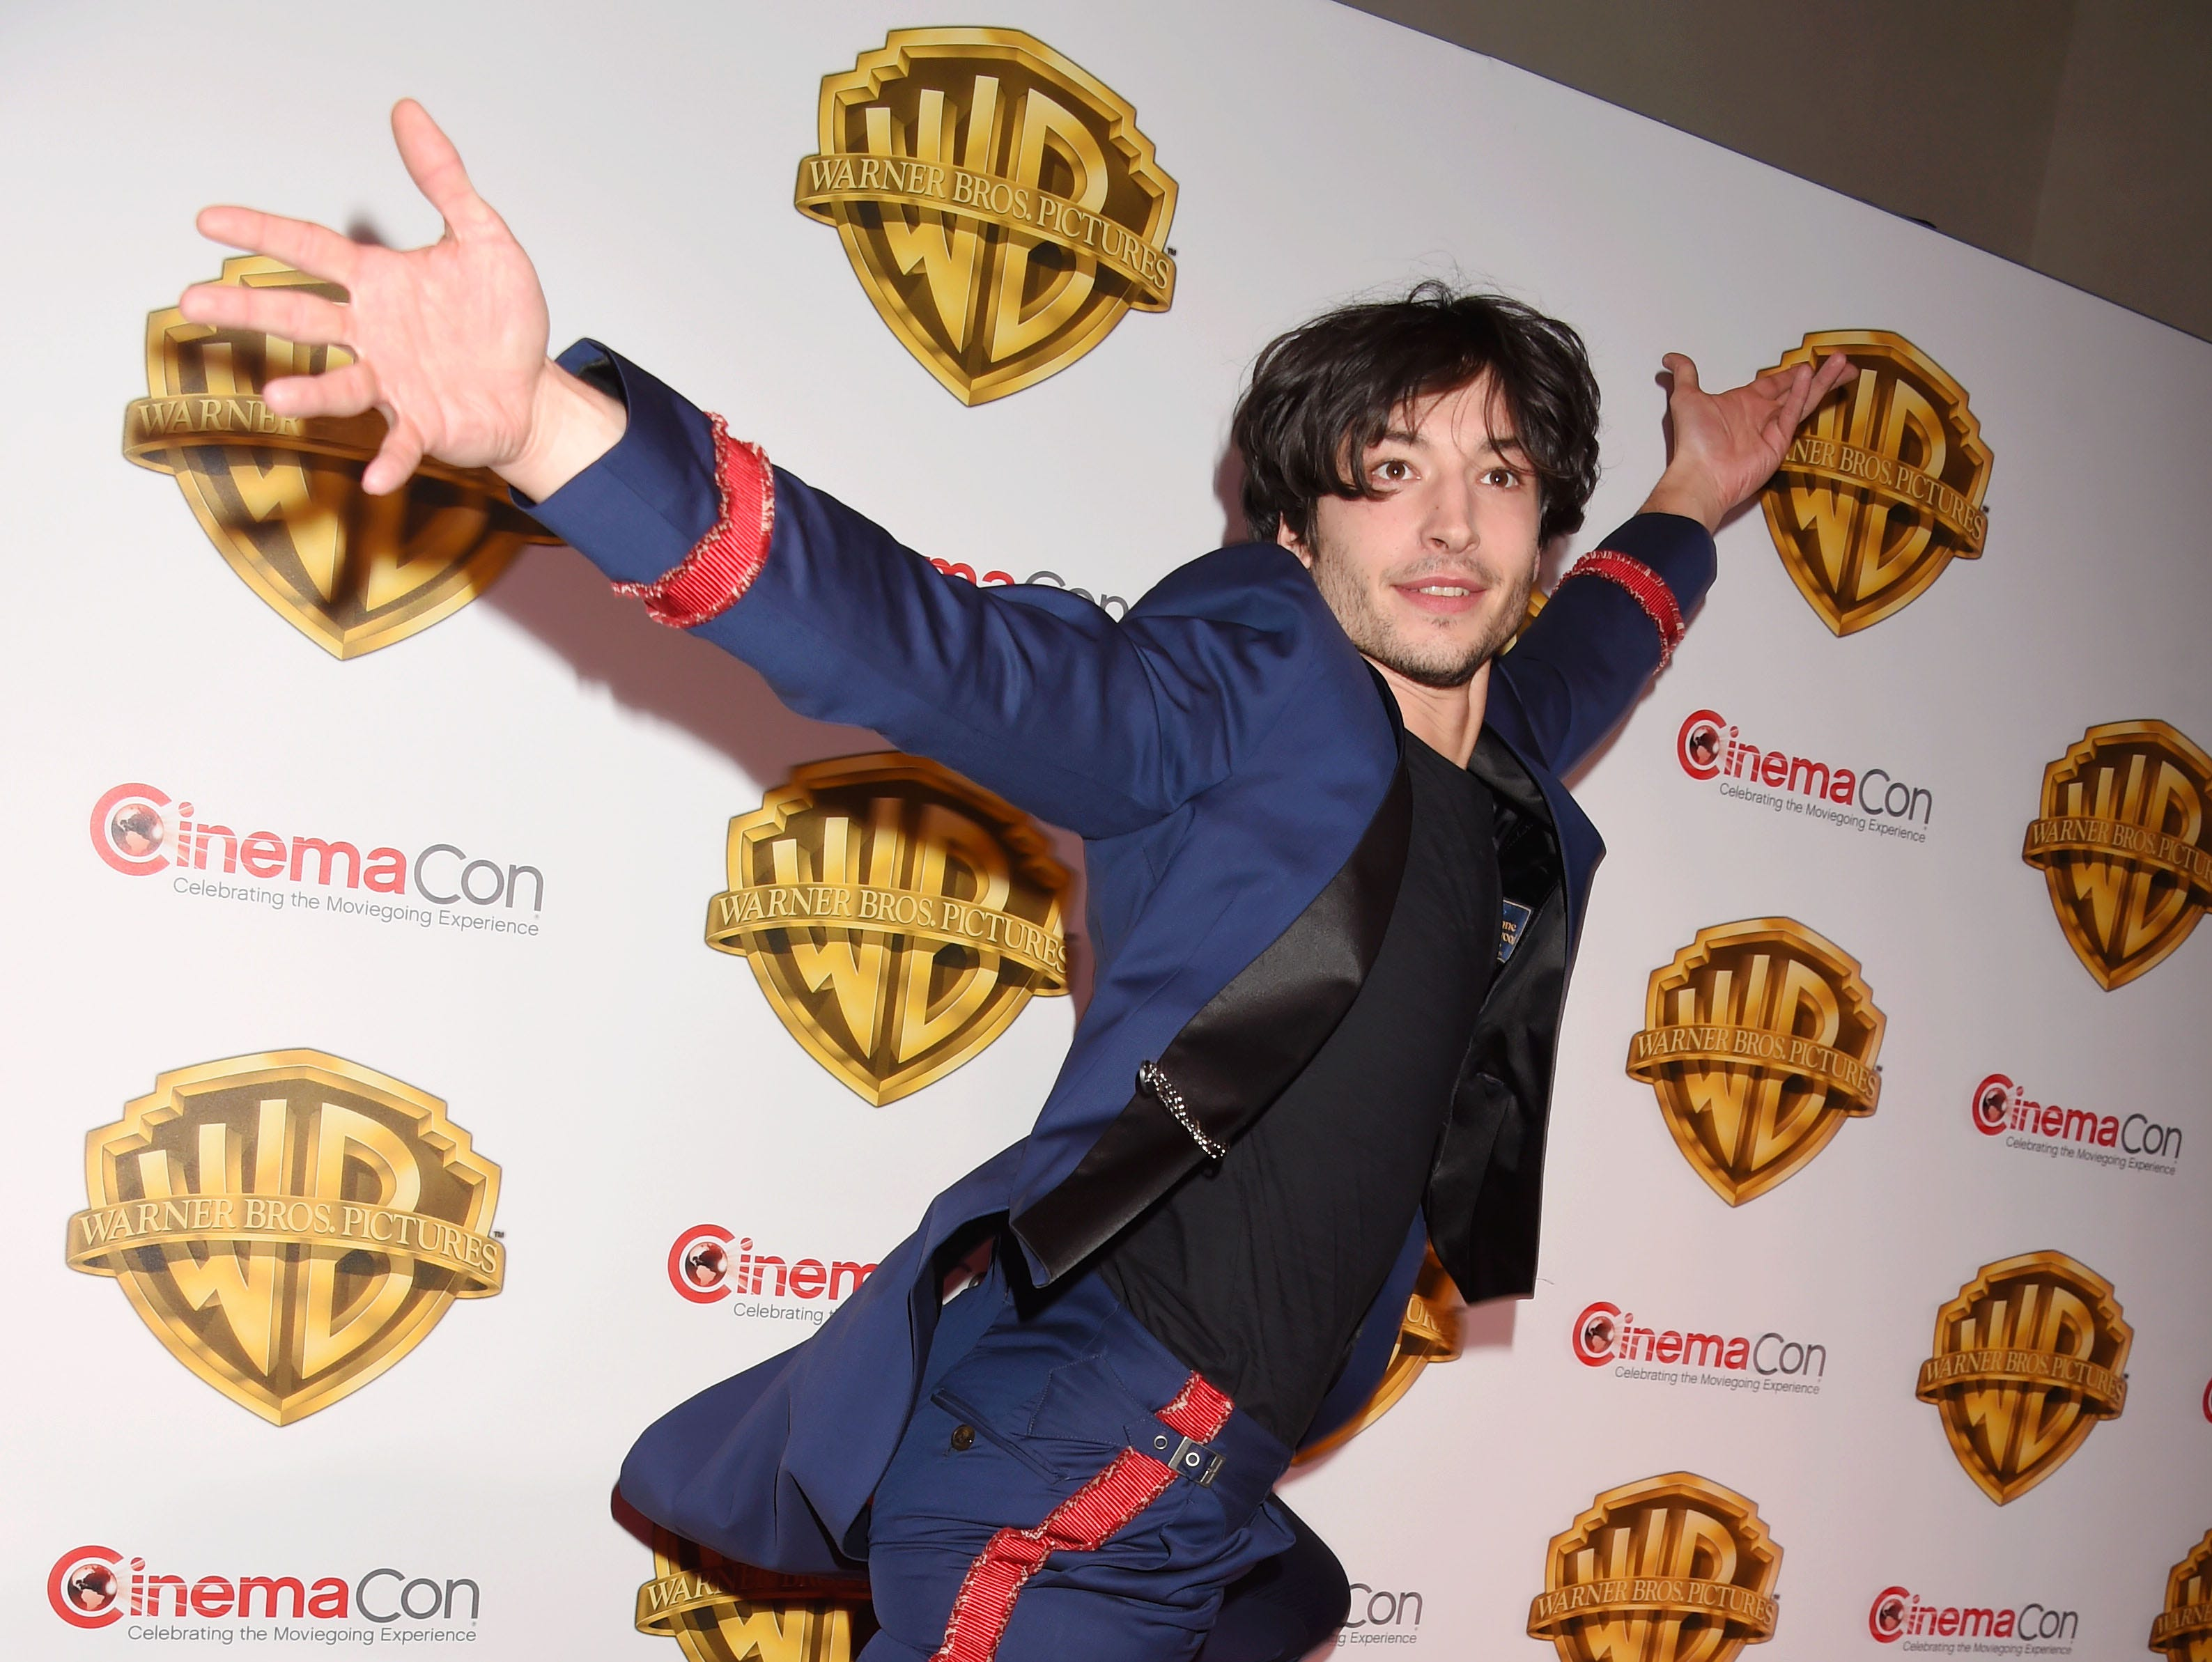 LAS VEGAS, CA - MARCH 29: Actor Ezra Miller arrives at the CinemaCon 2017 Warner Bros. Pictures presentation of their upcoming slate of films at The Colosseum at Caesars Palace on March 29, 2017 in Las Vegas, Nevada.(Photo by Jeffrey Mayer/WireImage) ORG XMIT: 700023978 ORIG FILE ID: 660392358